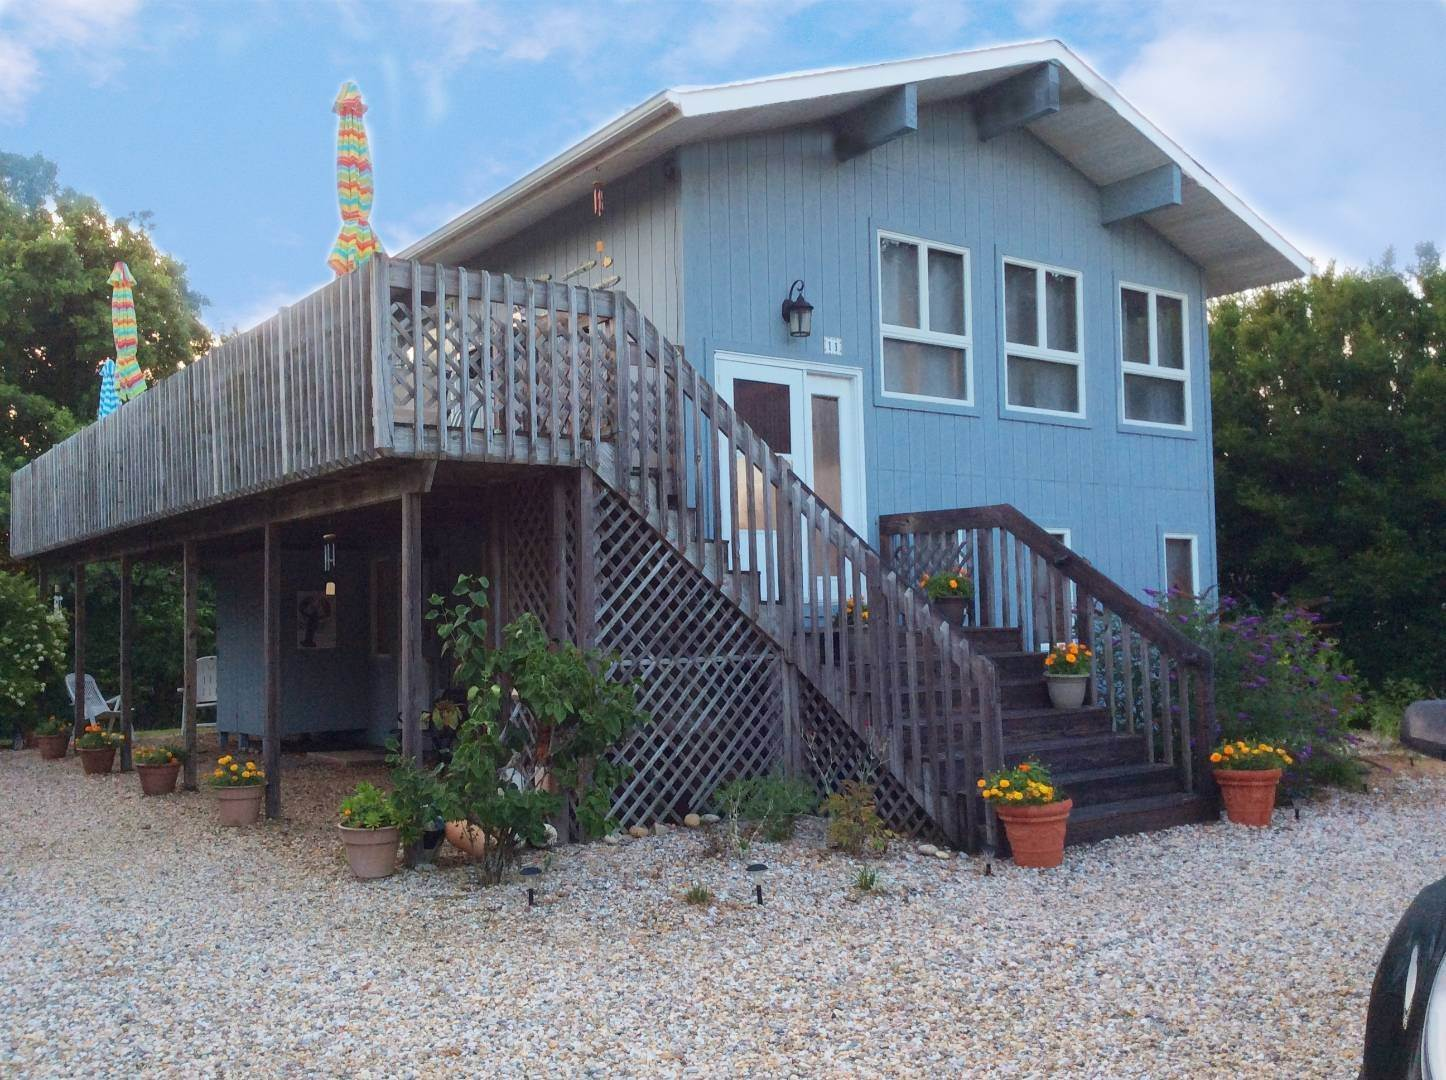 Single Family Home at Montauk Culloden Shores 11 Tern Drive Culloden, Montauk, NY 11954